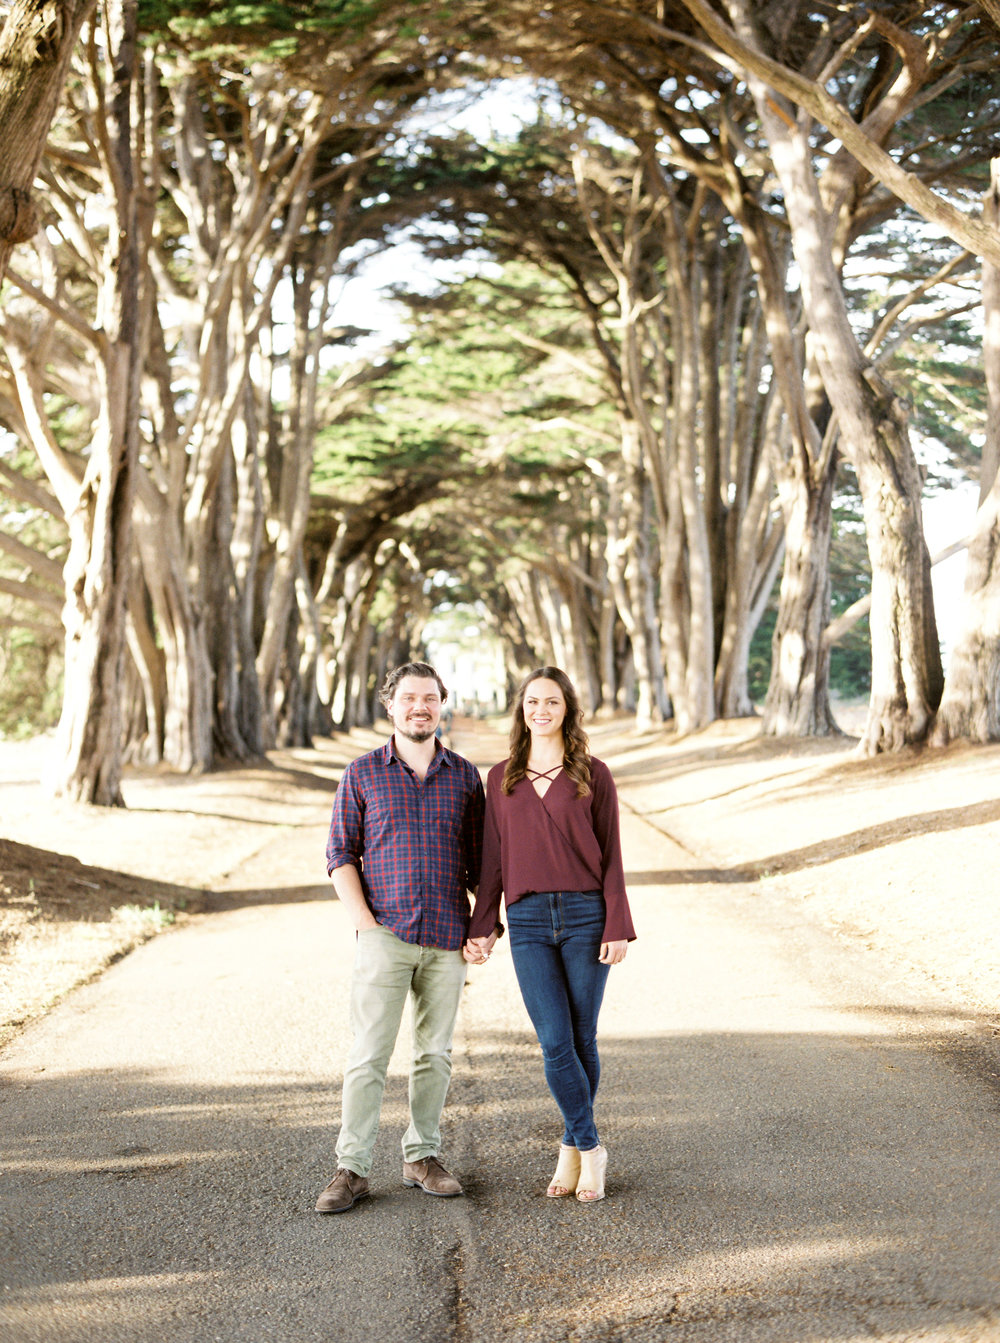 Point Reyes Engagement Session in San francisco California-7.jpg